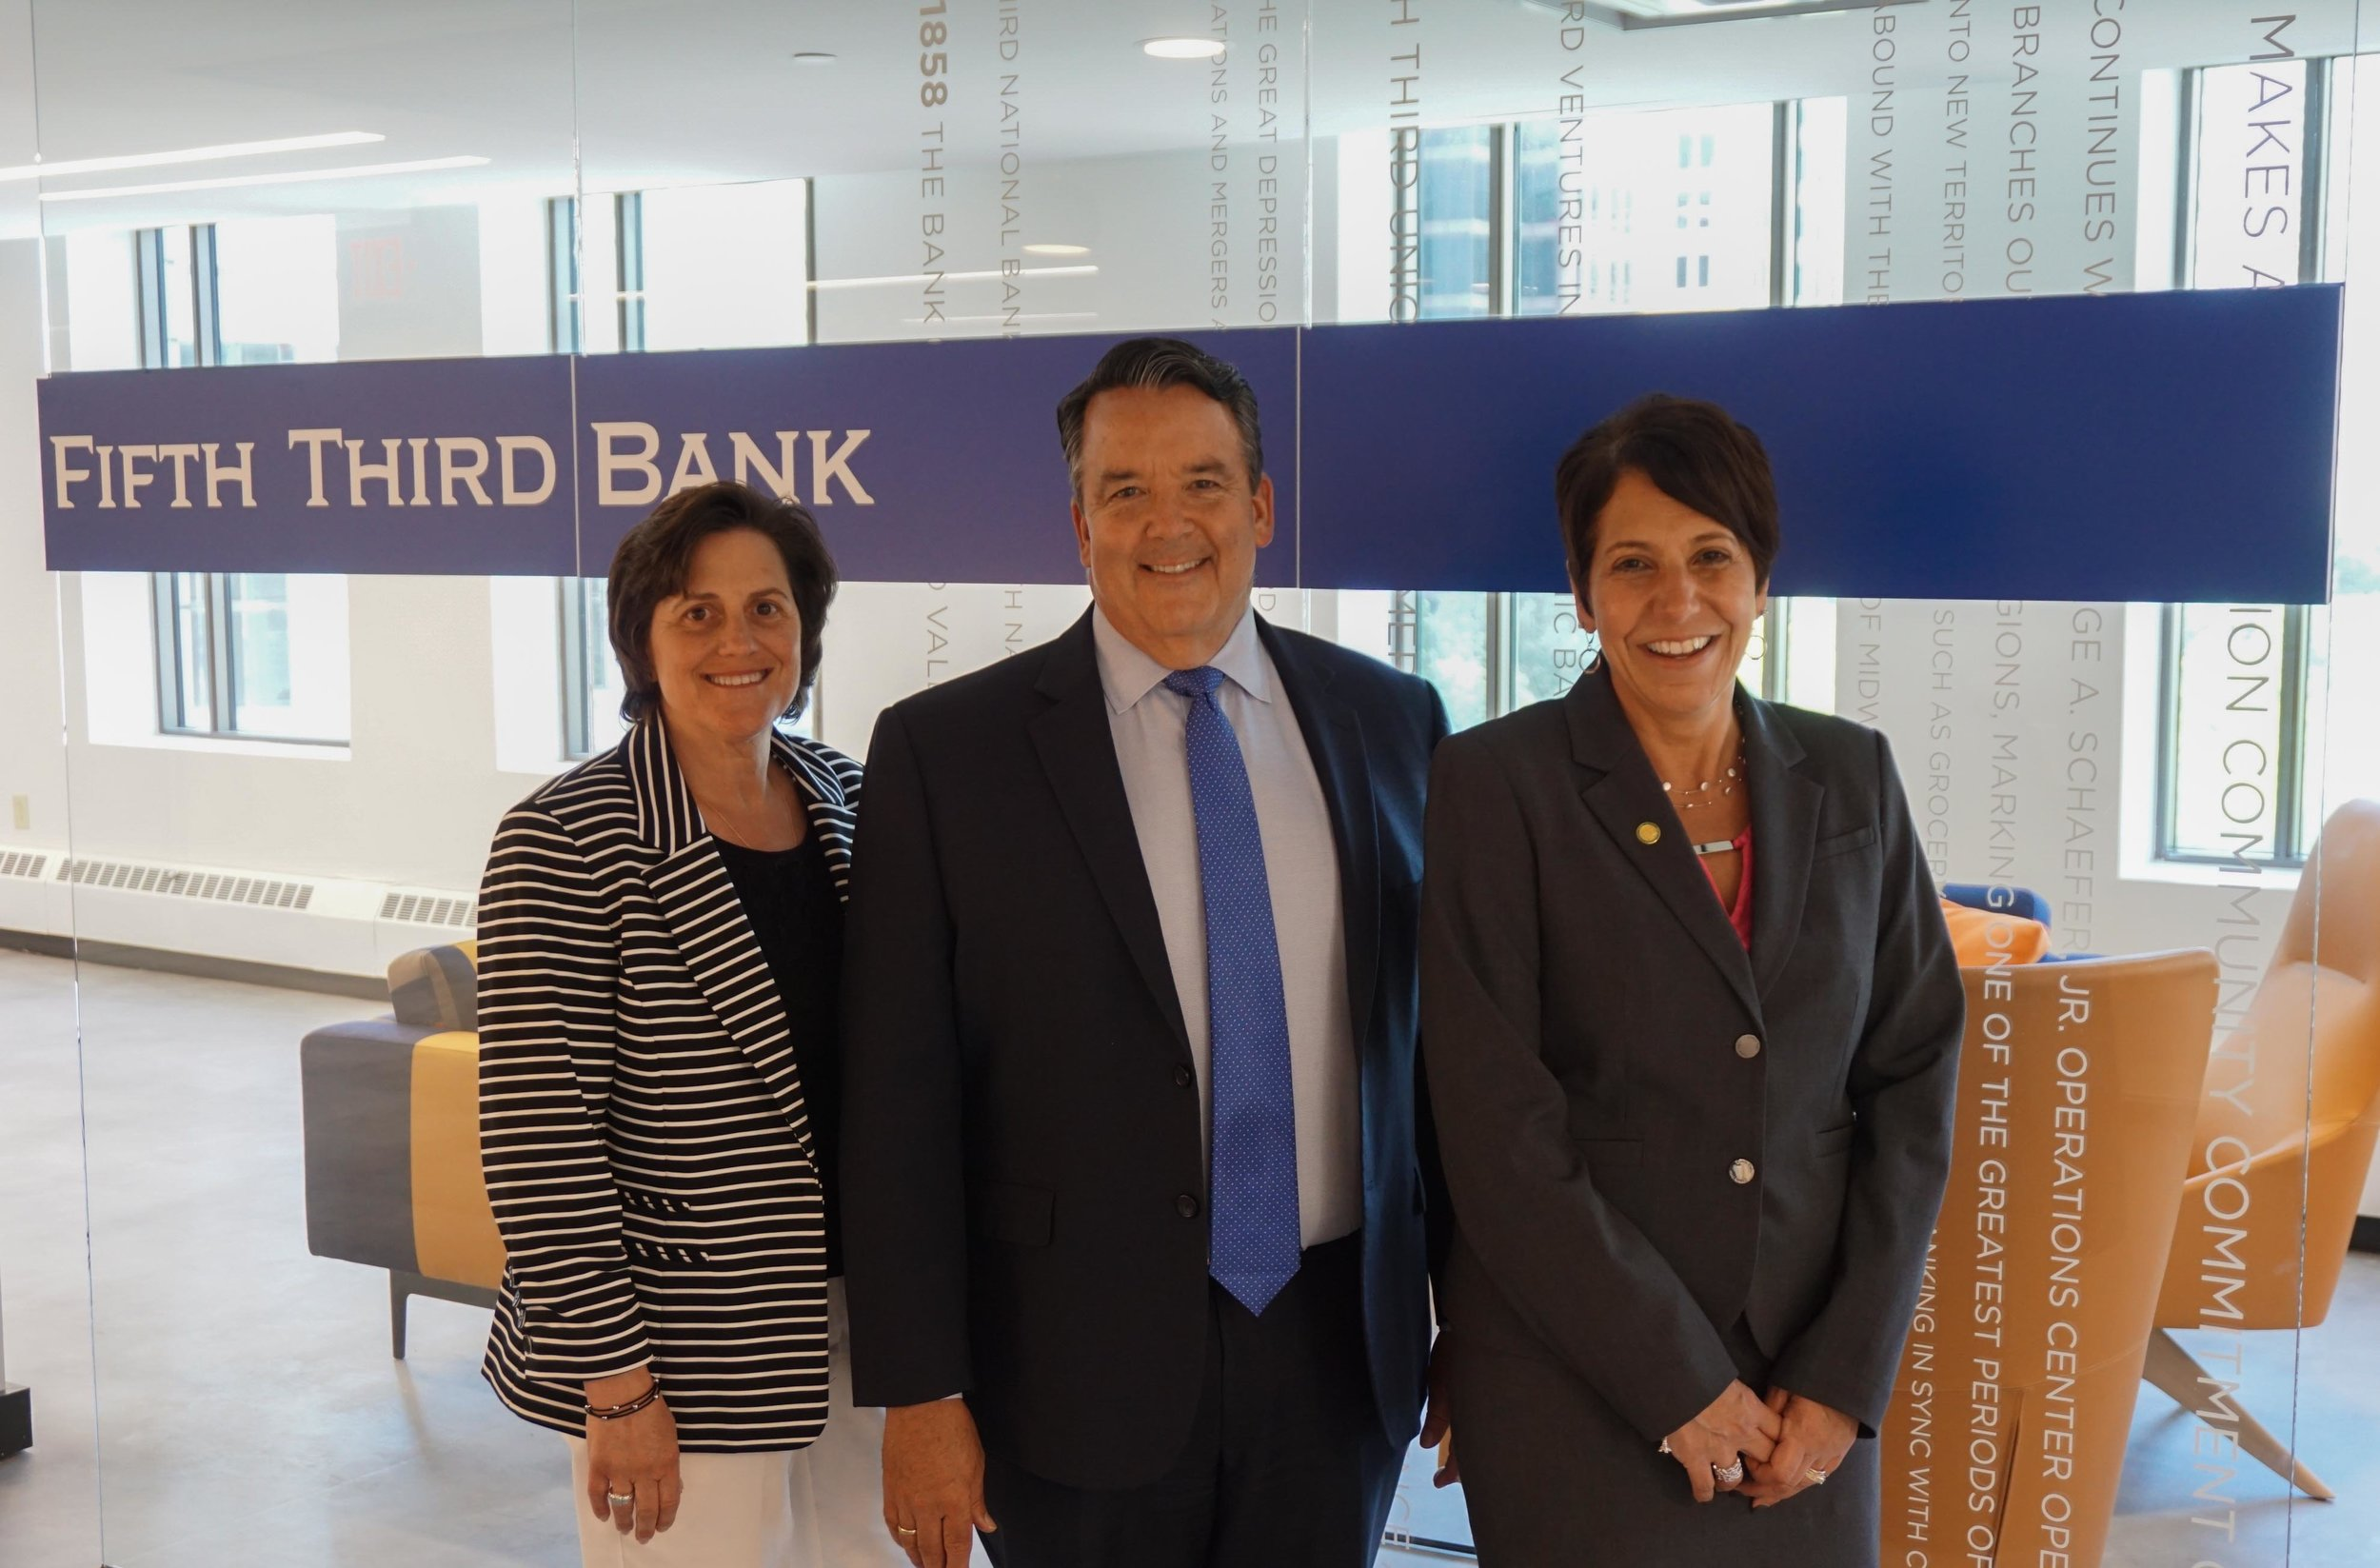 L to R: Francie Henry, Regional President-Central Ohio, Fifth Third Bank and OFIC Board Chair; Bill Spiker, President, OFIC; Lillian Schumacher, President, Tiffin University